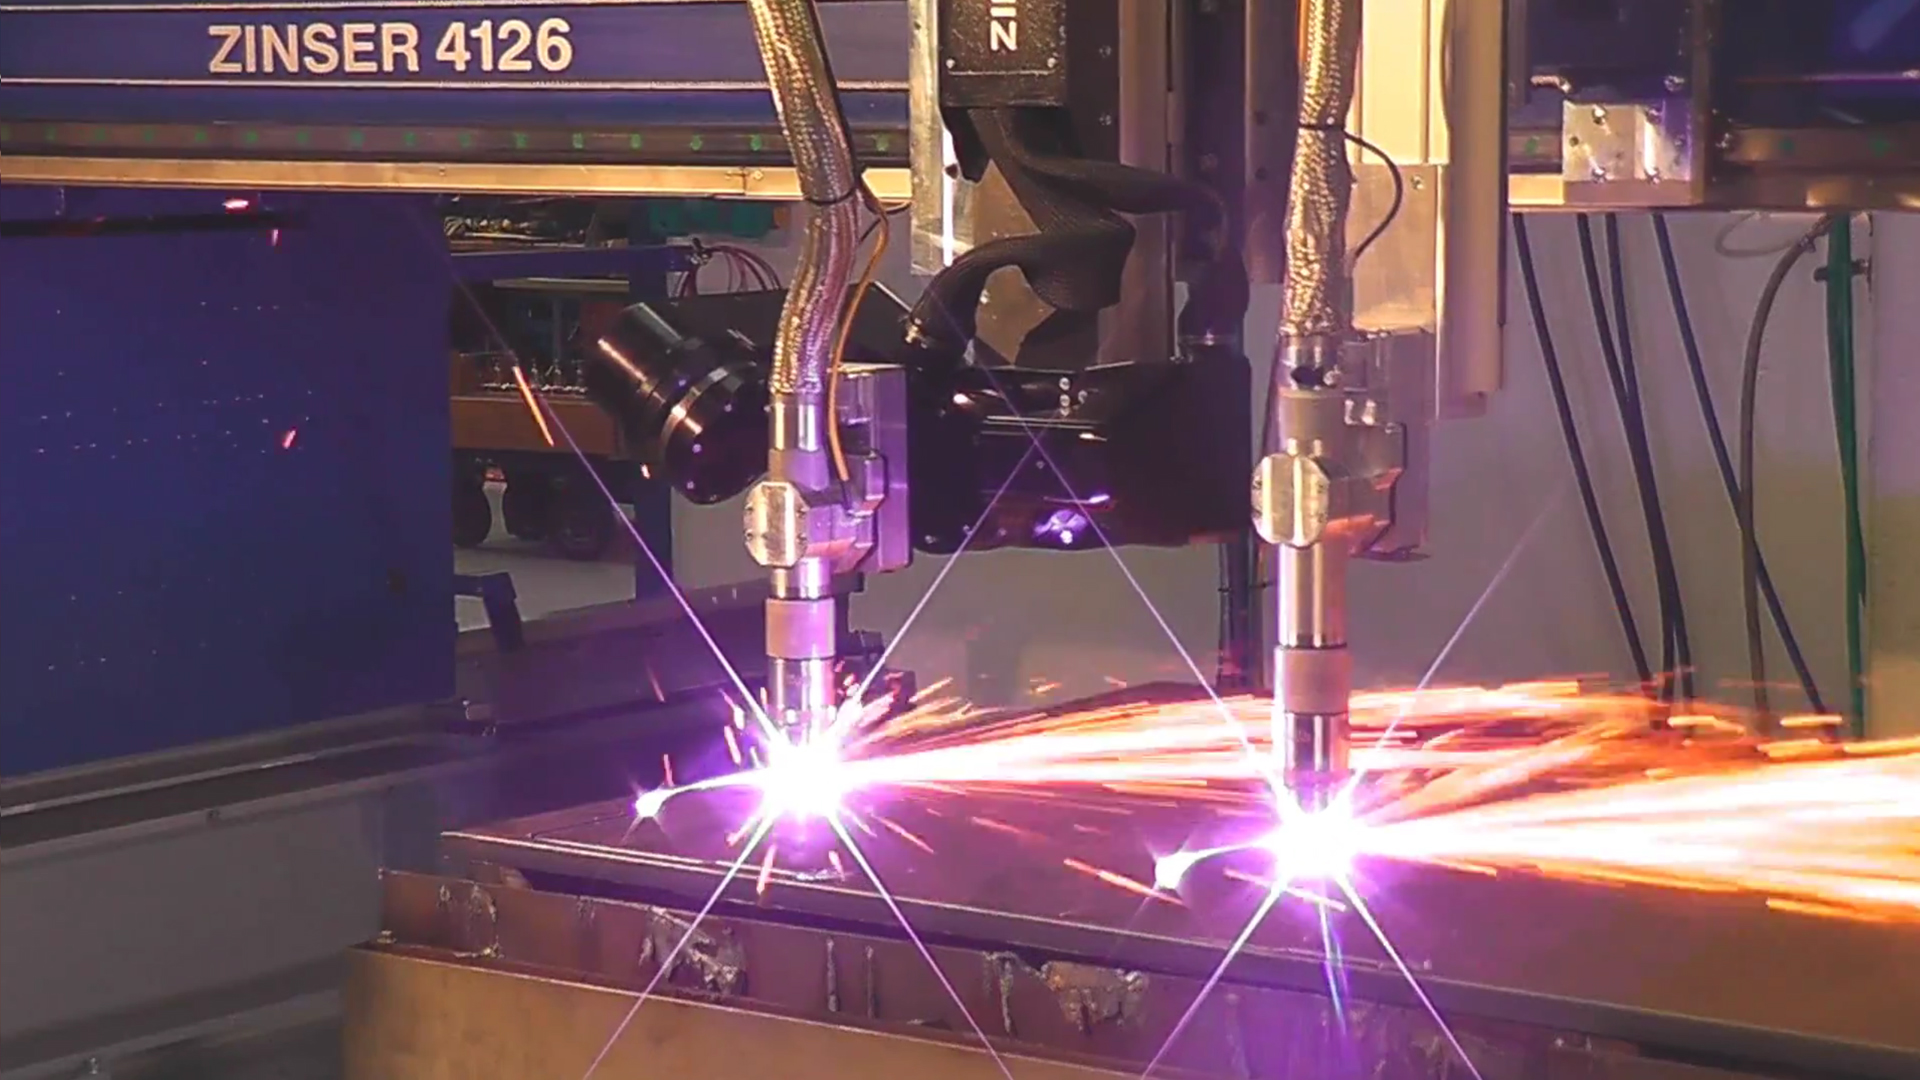 Double plasma cutting of steel plates